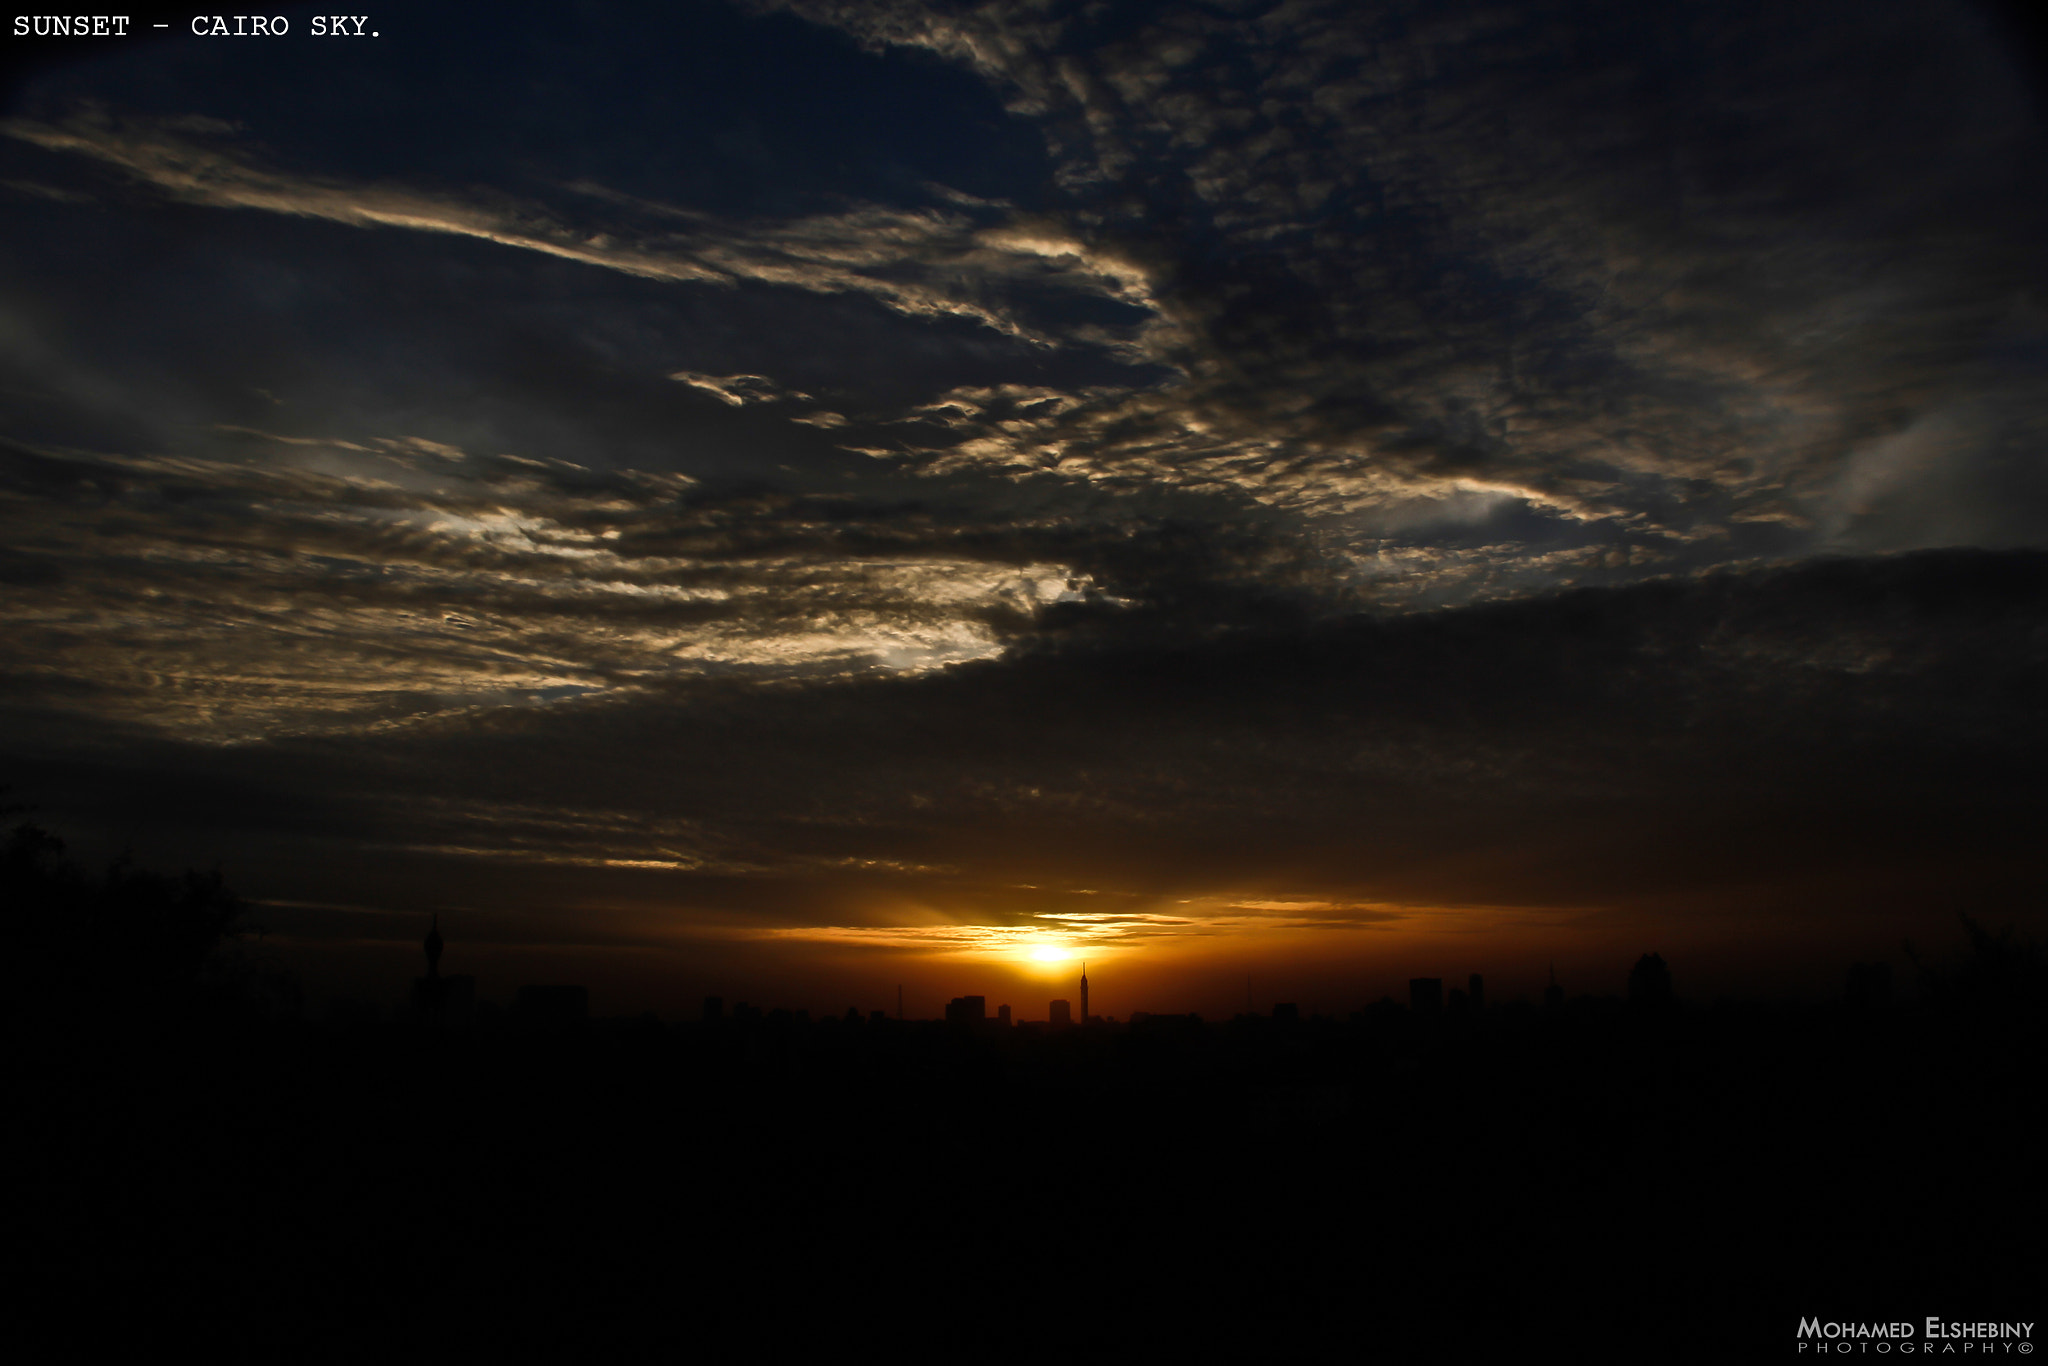 Photograph SUNSET -  CAIRO SKY. by Mohamed Elshebiny on 500px